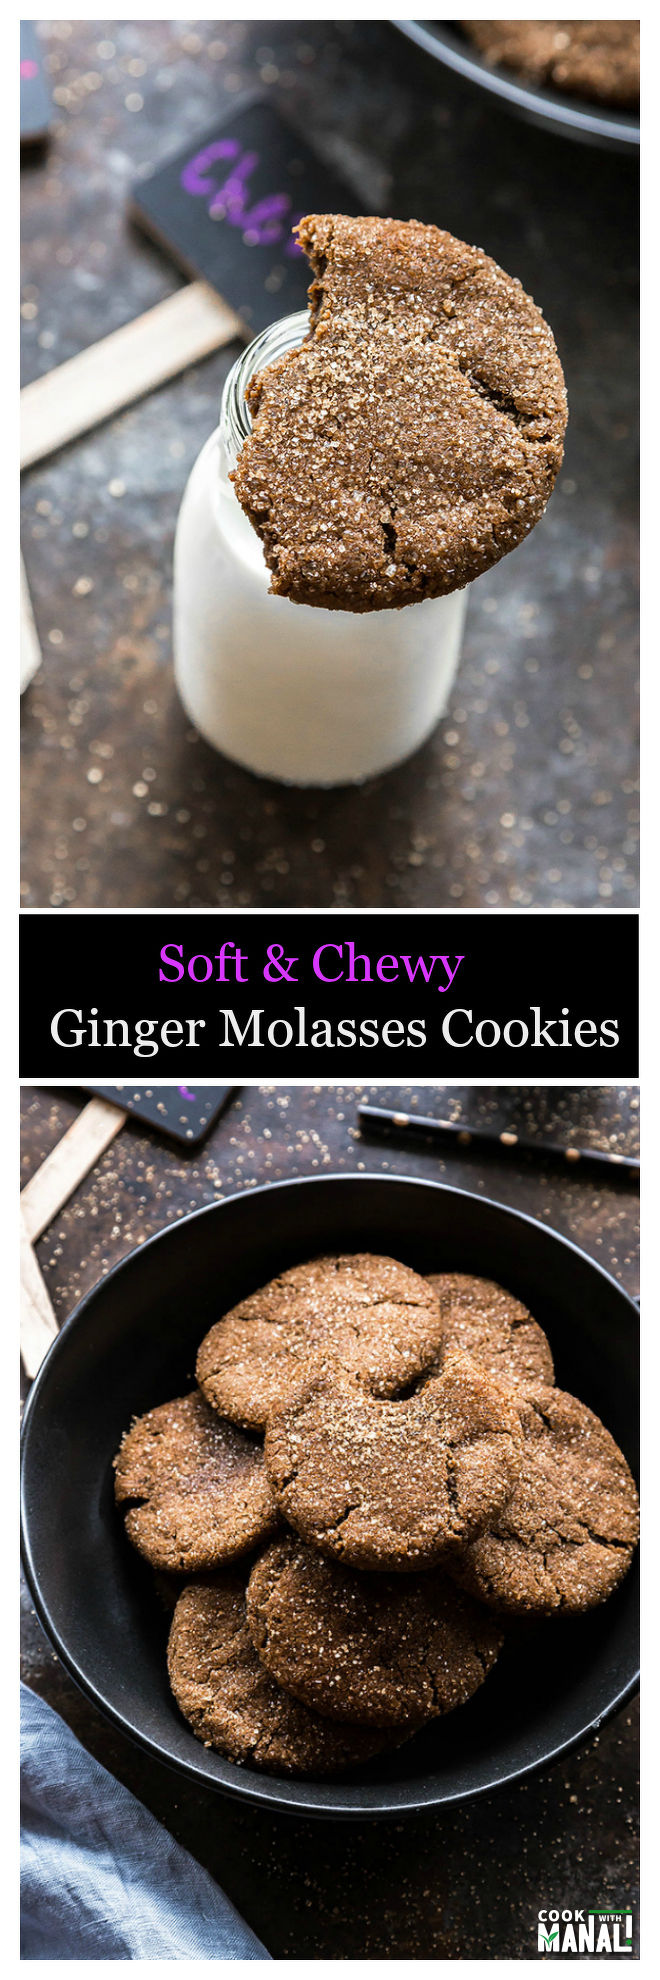 chewy-ginger-molasses-cookies-collage